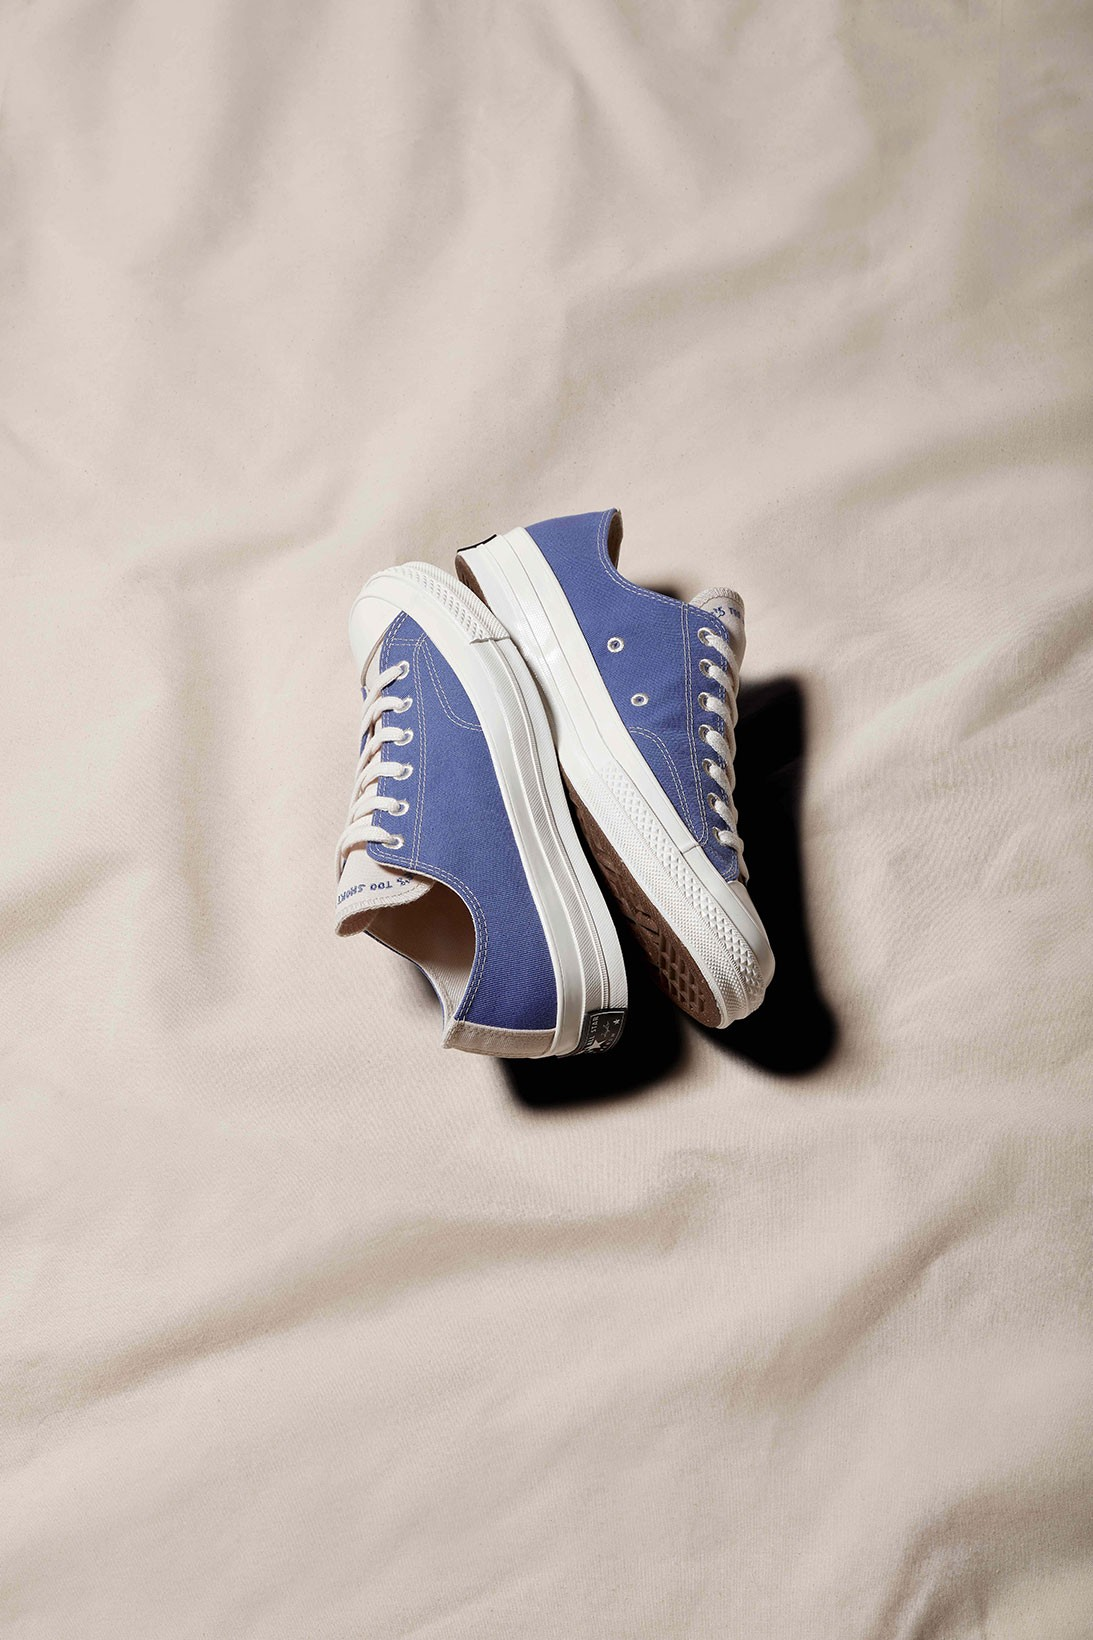 converse chuck Taylor all star made from sustainability plastic